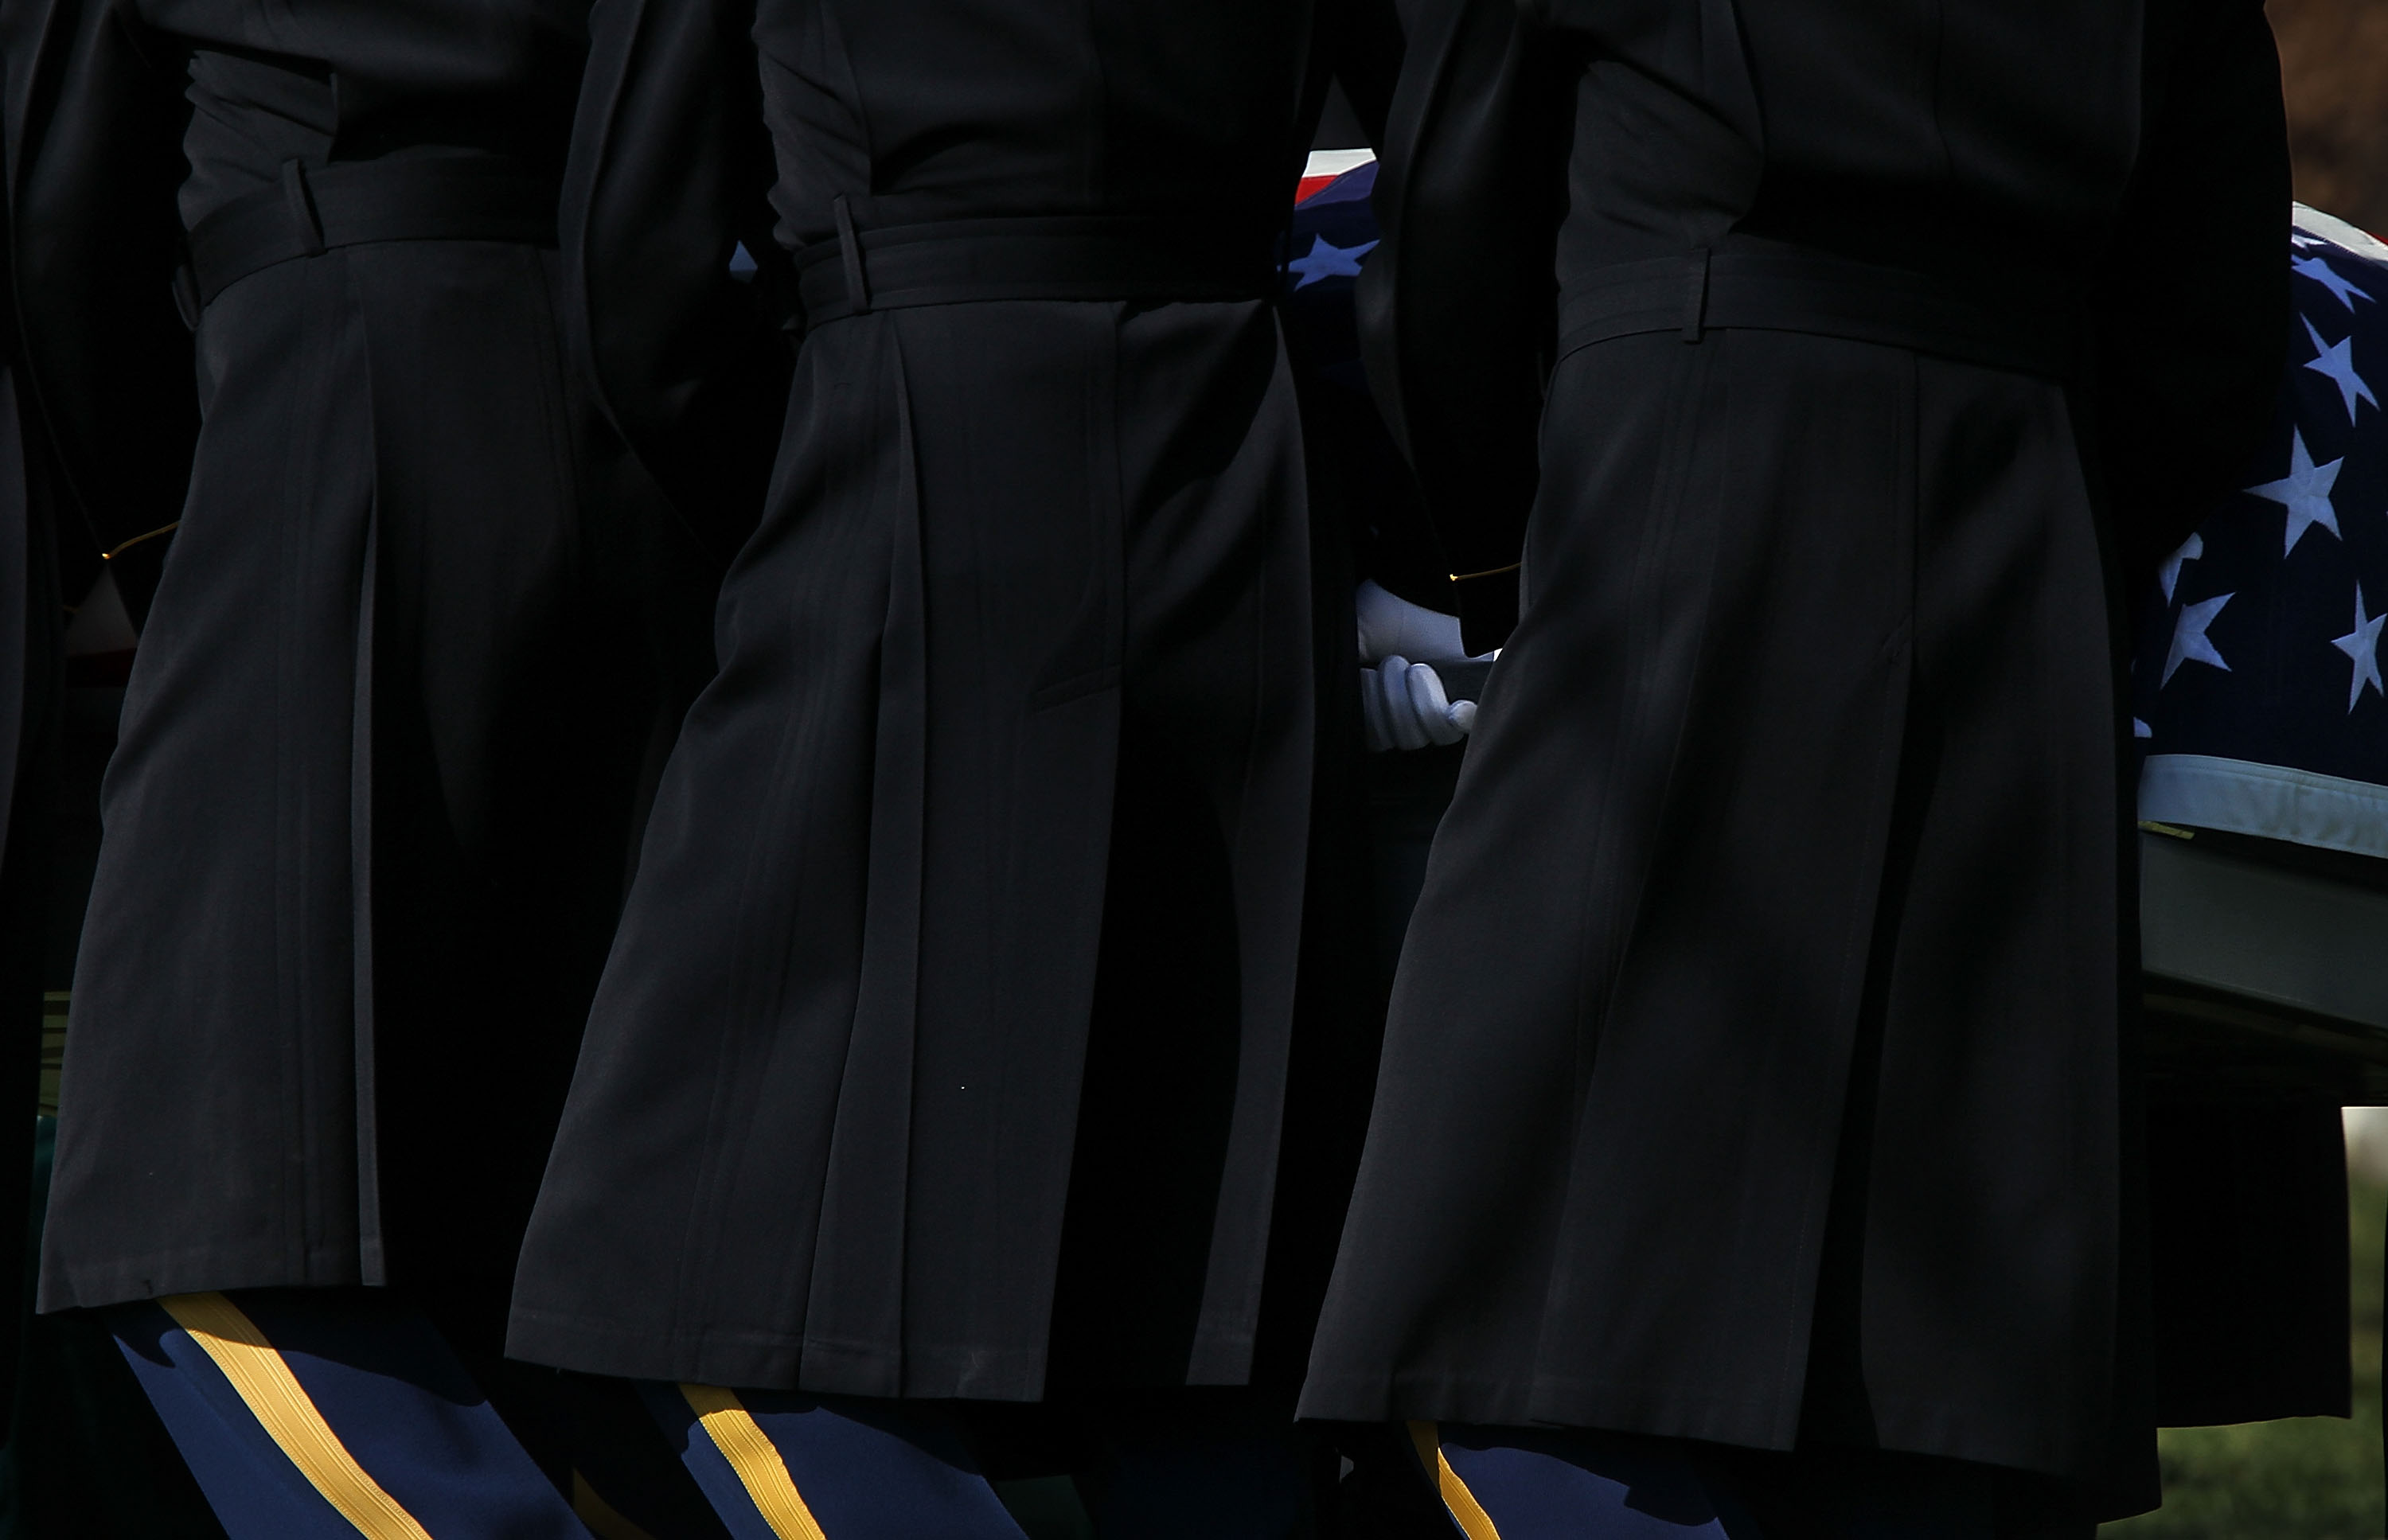 The flag-draped casket of U.S. Army 1st Lt. John E. Terpning of Mount Prospect, Ill. is carried to his final resting place by members of the Army's 3rd Infantry Regiment,  The Old Guard,  during his burial at Arlington National Cemetery in Va., April 3, 2013.